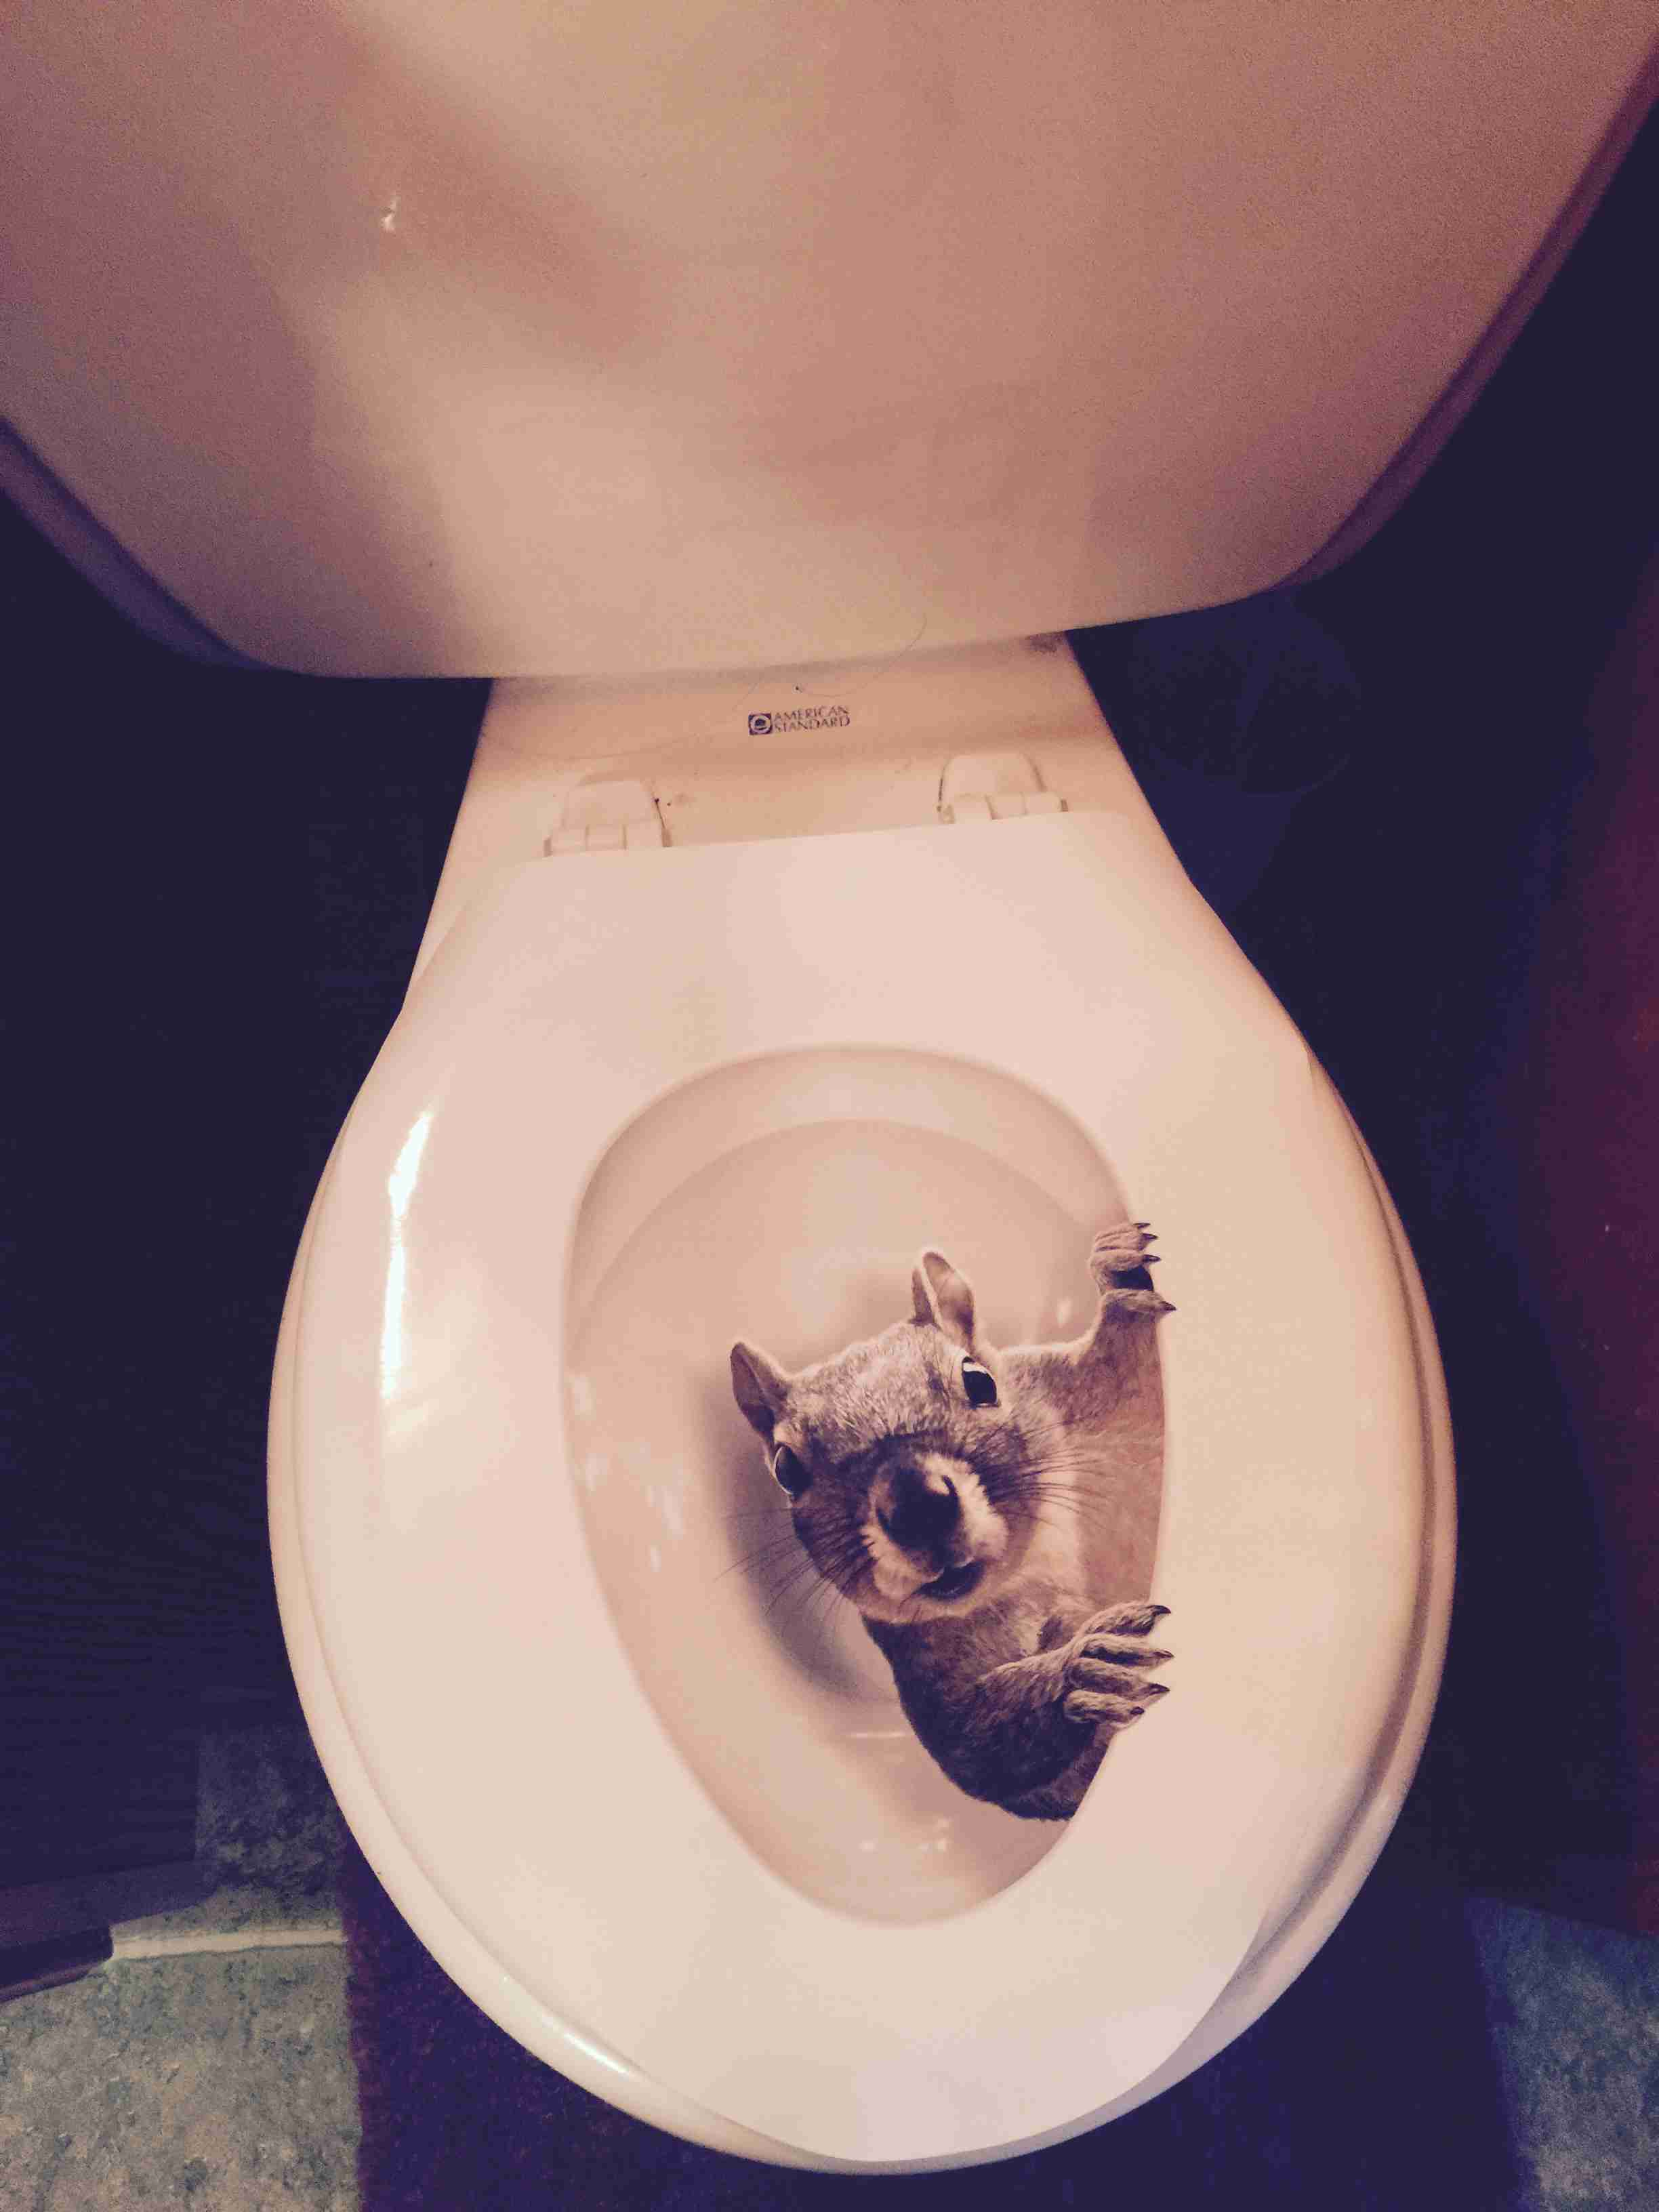 Cool toilet seat covers - Squirrel In The Toilet